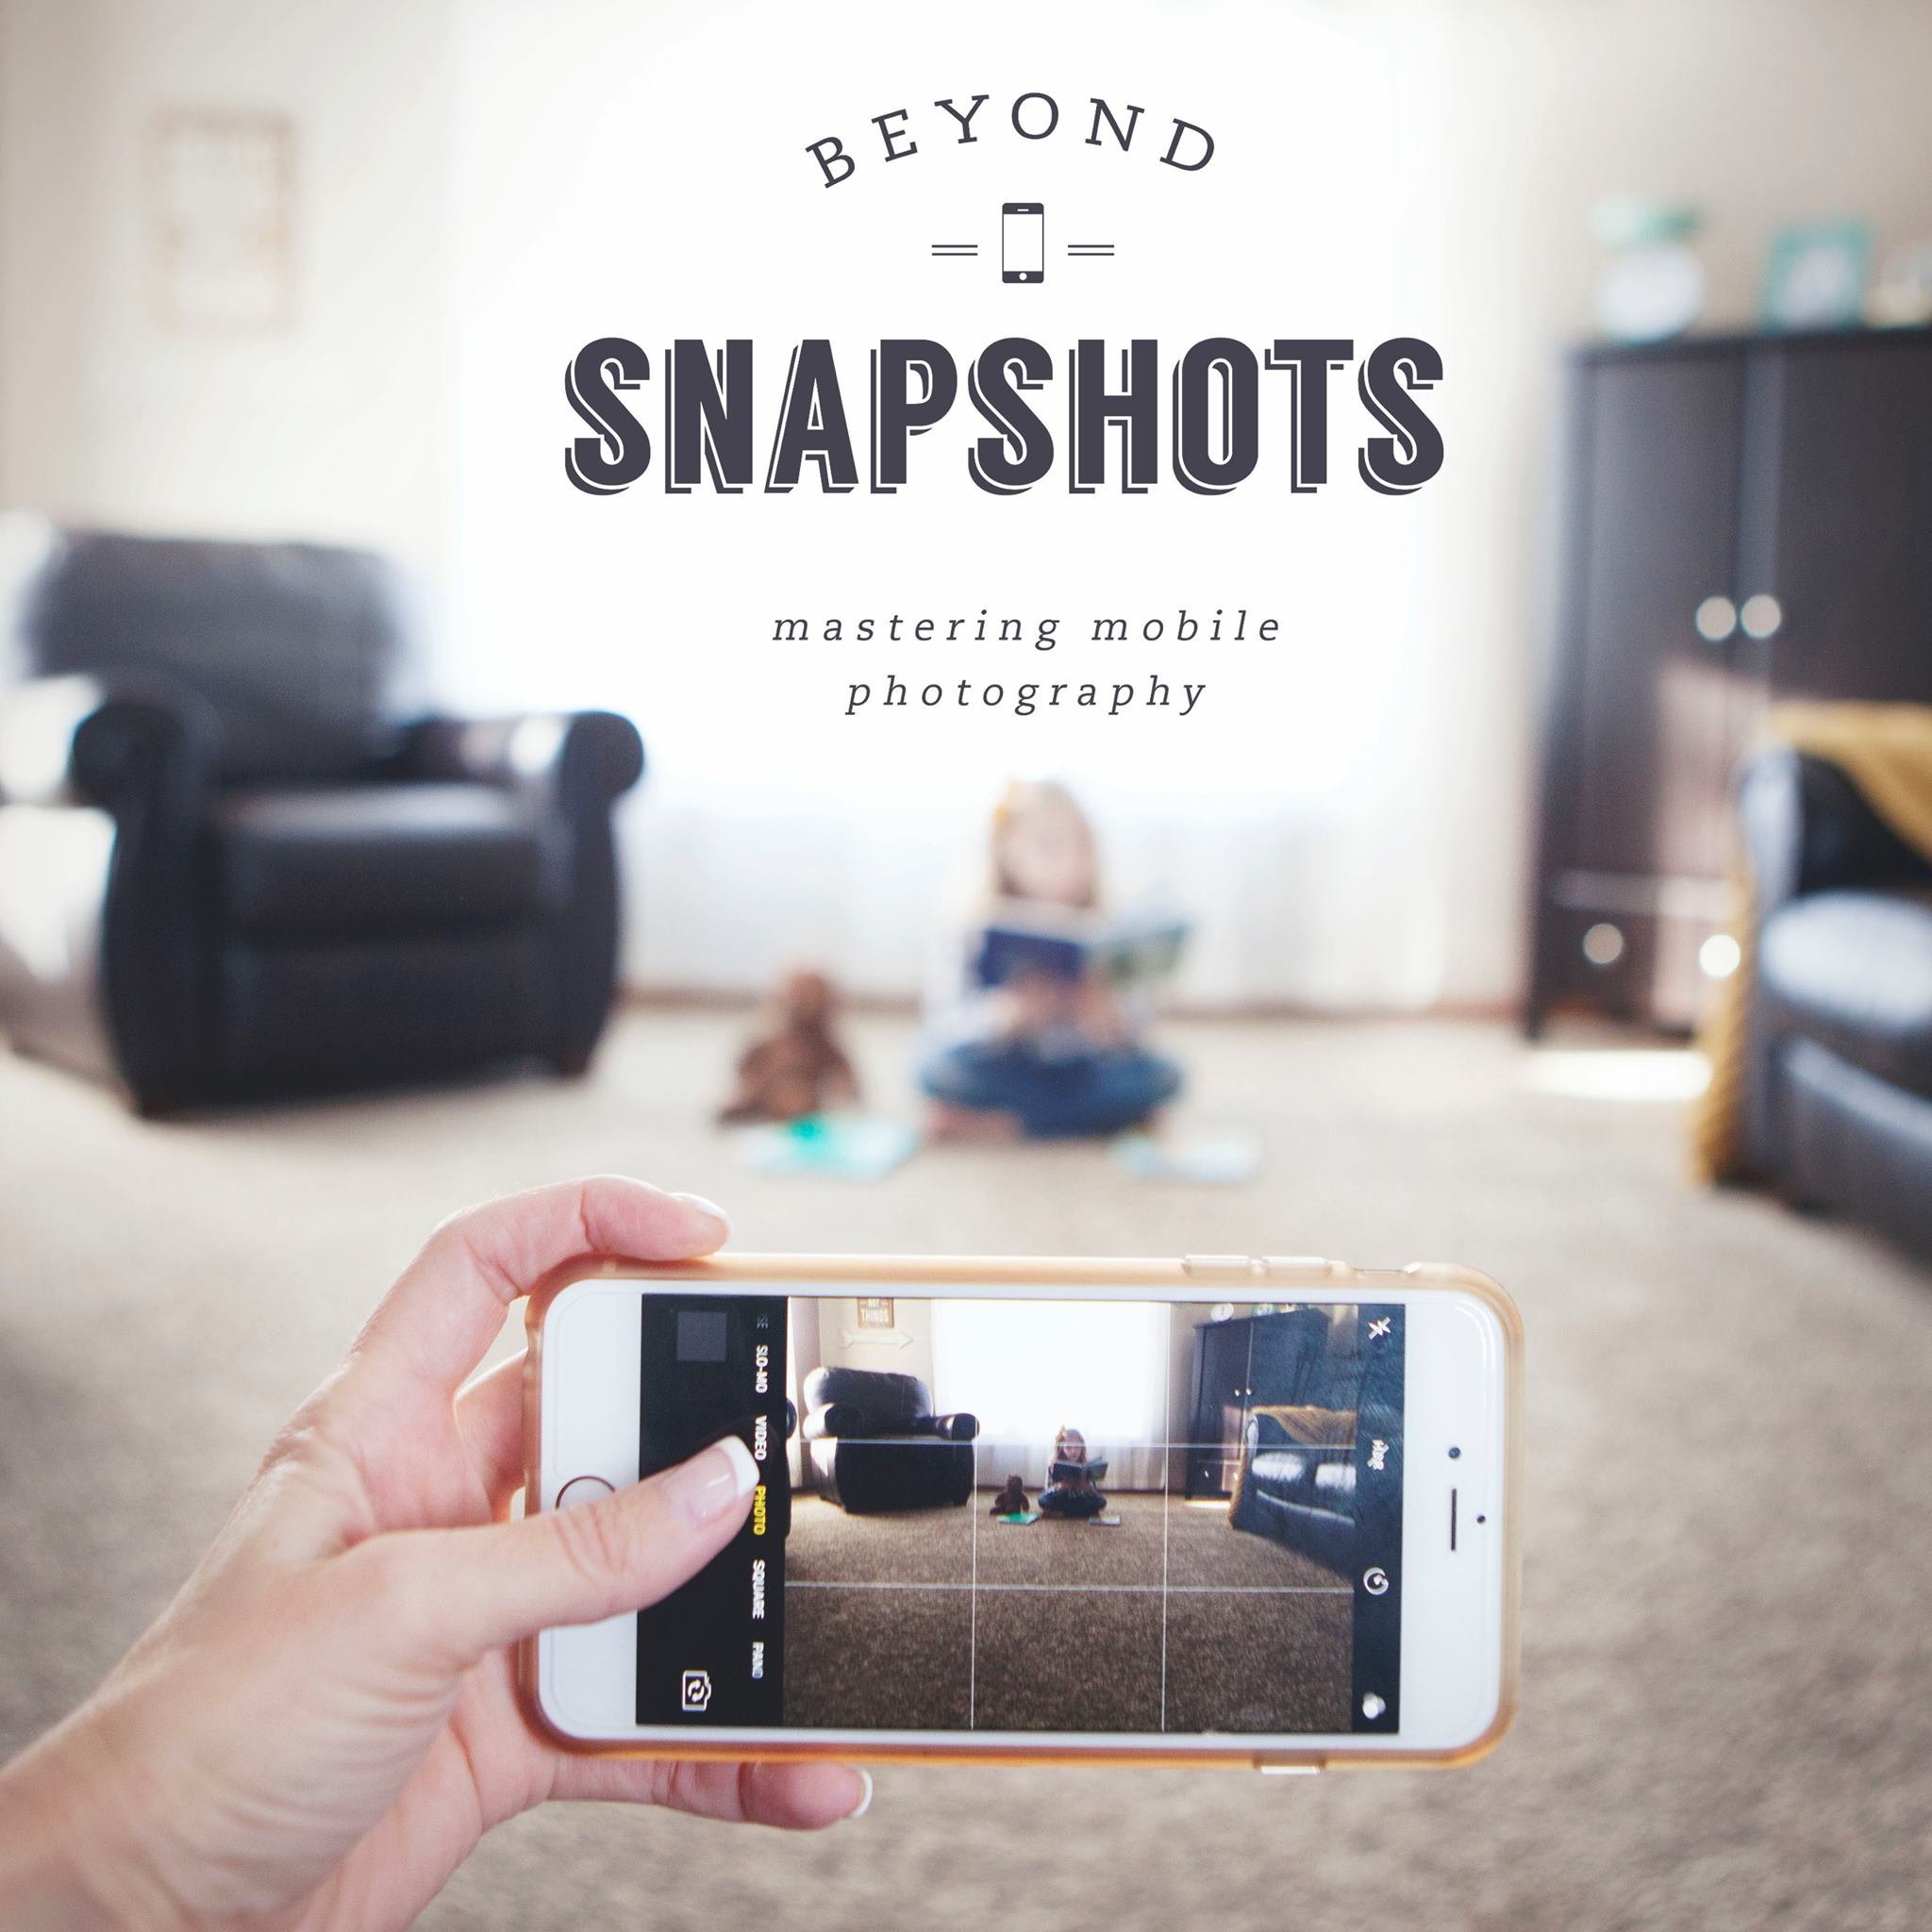 Want to move beyond taking snapshots to capturing magical moments? How about doing it with the camera that's already in your hand? Your phone.